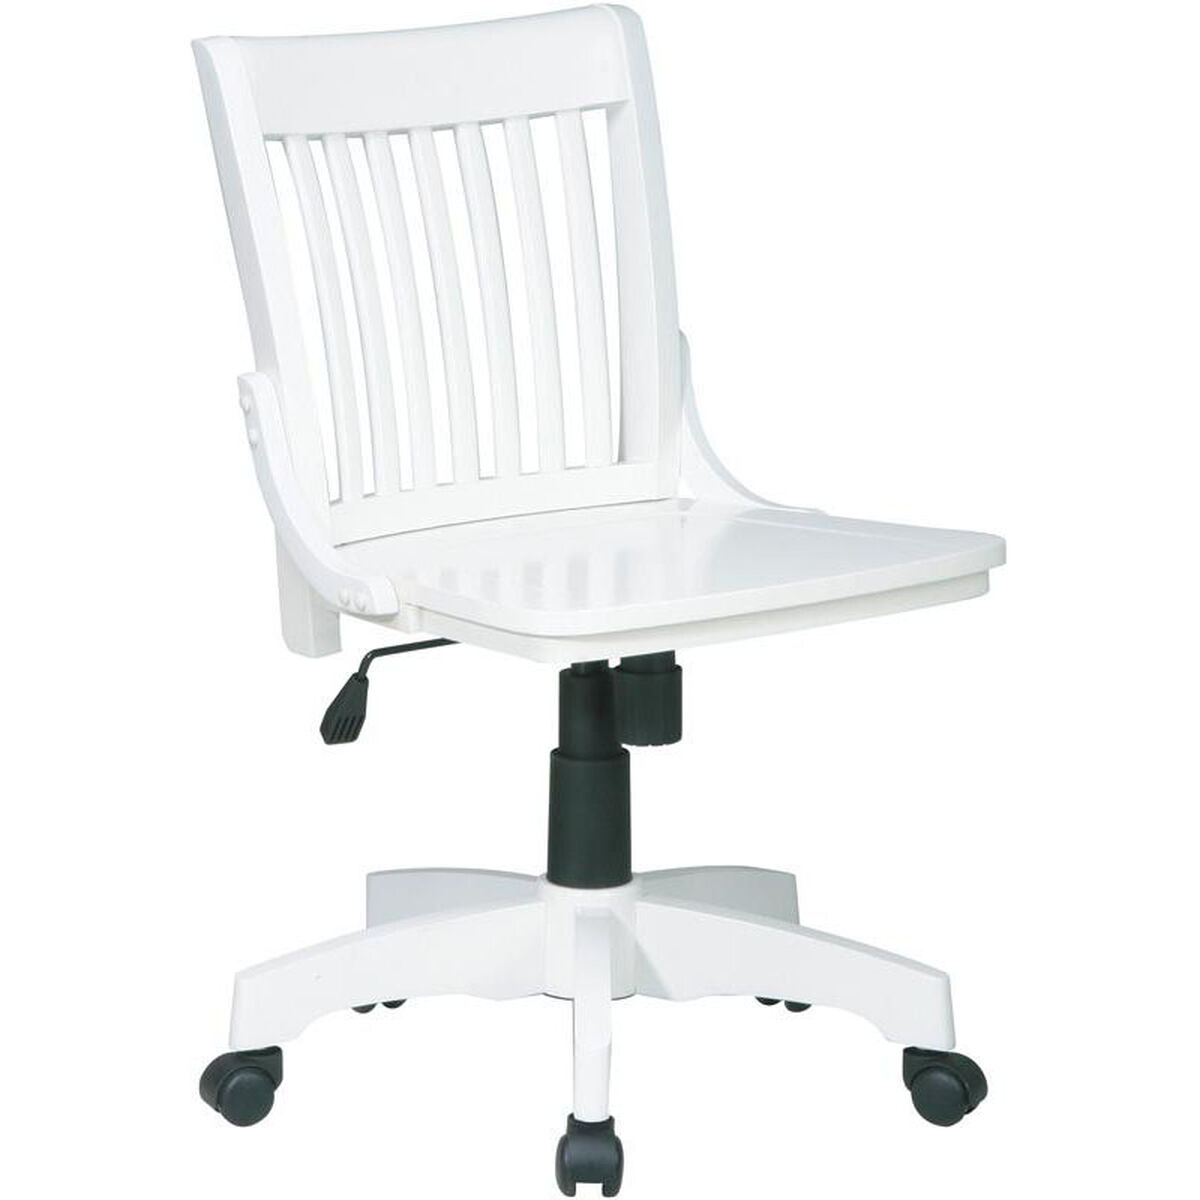 ... Our OSP Designs Deluxe Armless Wood Banker's Desk Chair with Wood Seat  - Antique White is ... - Deluxe White Bankers Chair 101ANW SchoolFurniture4Less.com